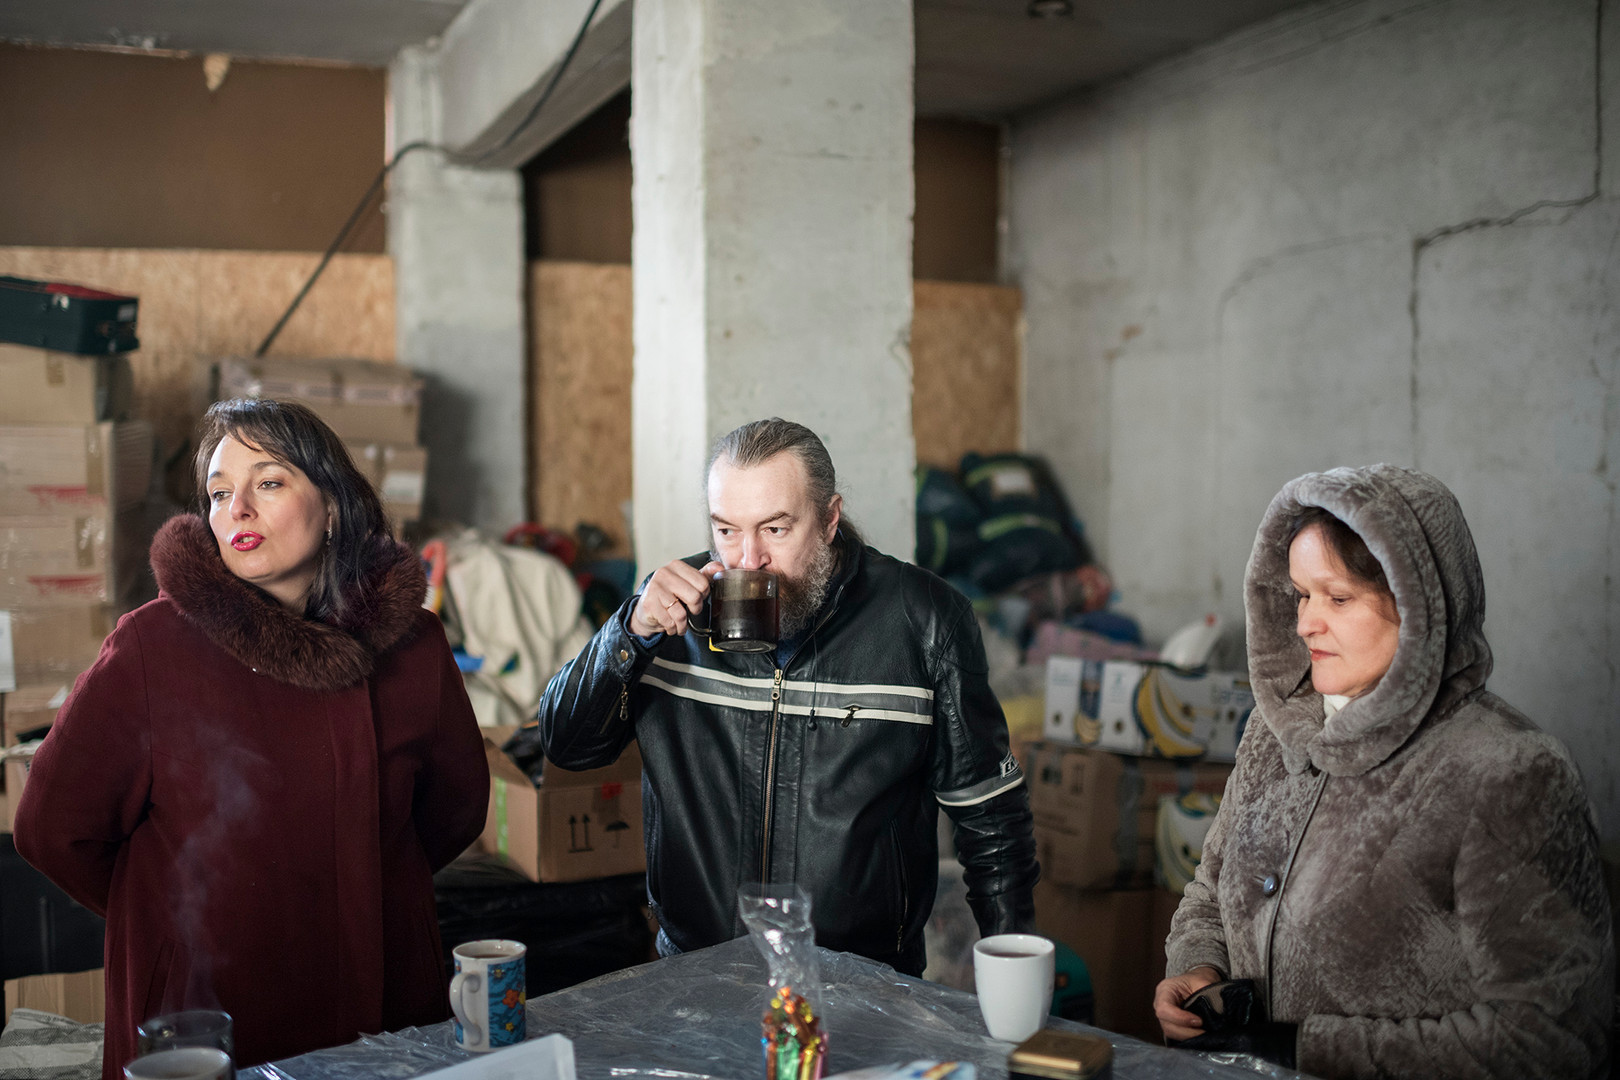 "Four years ago, Irina and Alexei (left and middle) founded the Dobrosvet. An organization, which collects emergency aid for the Pro-Russian Ukranians who are in need of medicine, clothing and food due to thethe civil war in the Ukrainian region of Donbass. With the help of the infamous Russian motorcycle gang The Night Wolves, Dobrosvet drives the emergency aid to Russia. From where it is transported southwards, across the border and to Lugansk, one of the main cities of the insurgency. ""I saw in Russian television how the war made it impossible for people in Donbass to live. They are also Russians, they are also our people. We need to help them, ""says Irina Esakov"